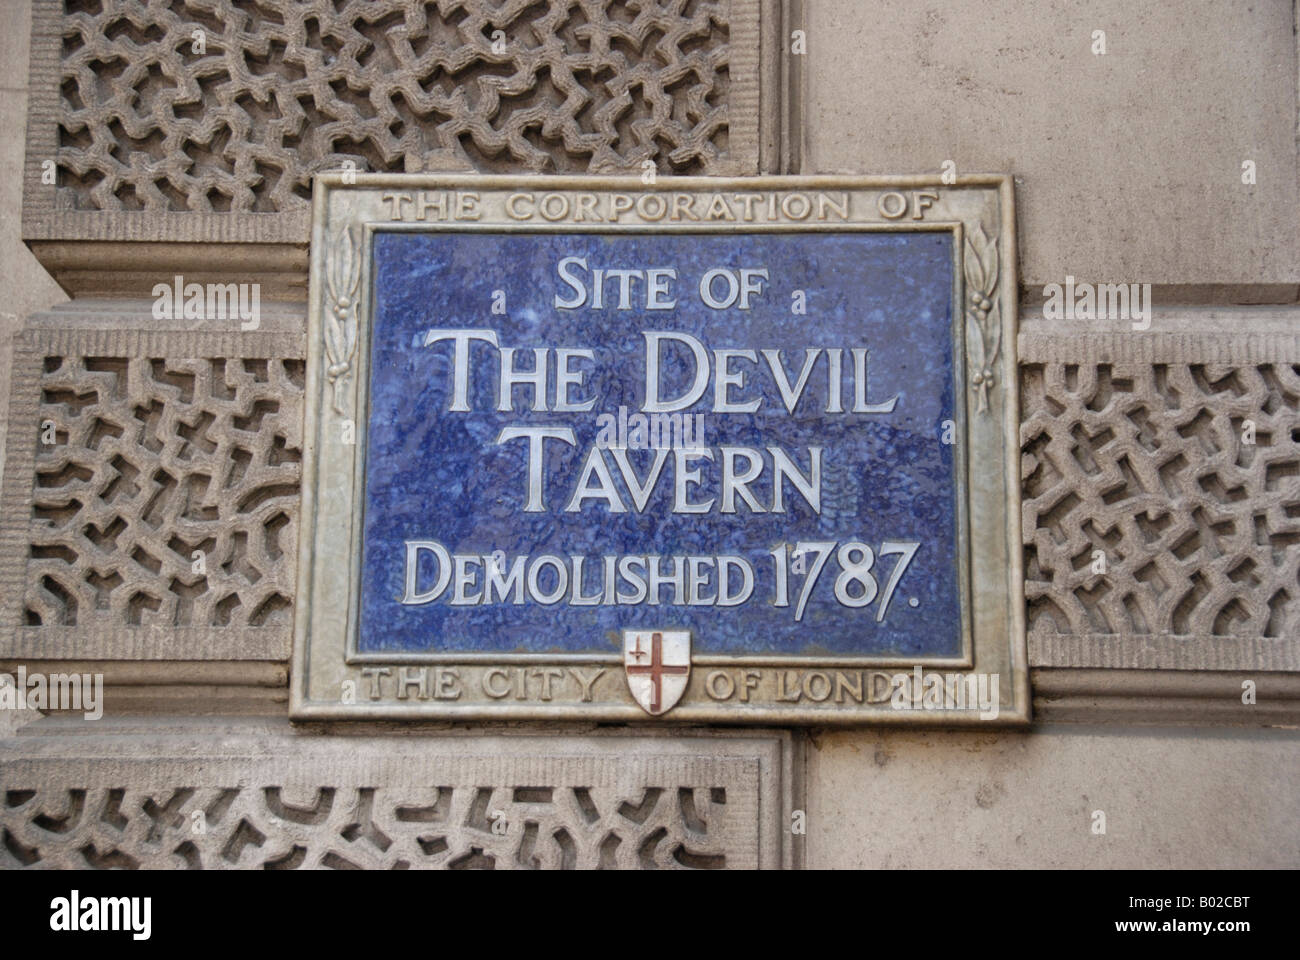 Blue City of London Corporation plaque marking the site of the demolished Devil Tavern in Fleet Street London - Stock Image